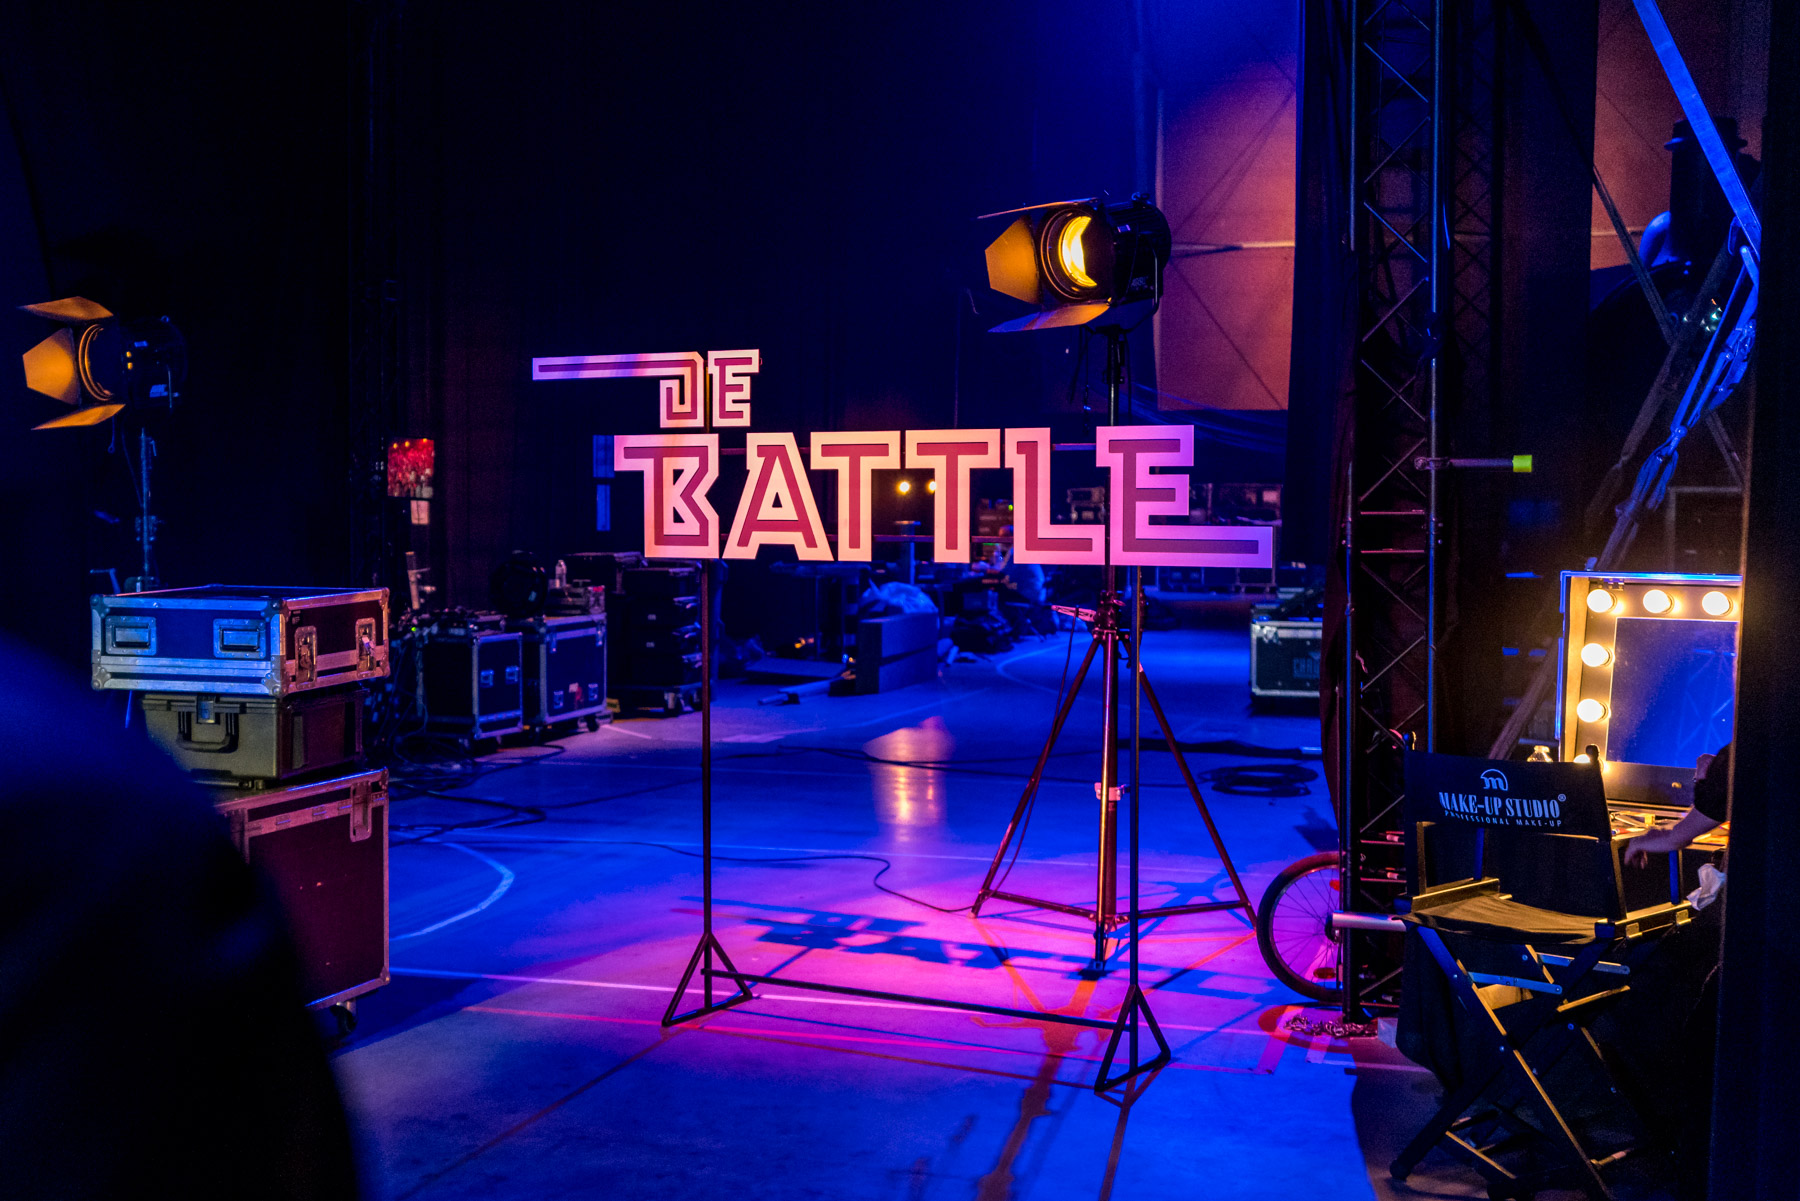 TV-decor - De battle (30)